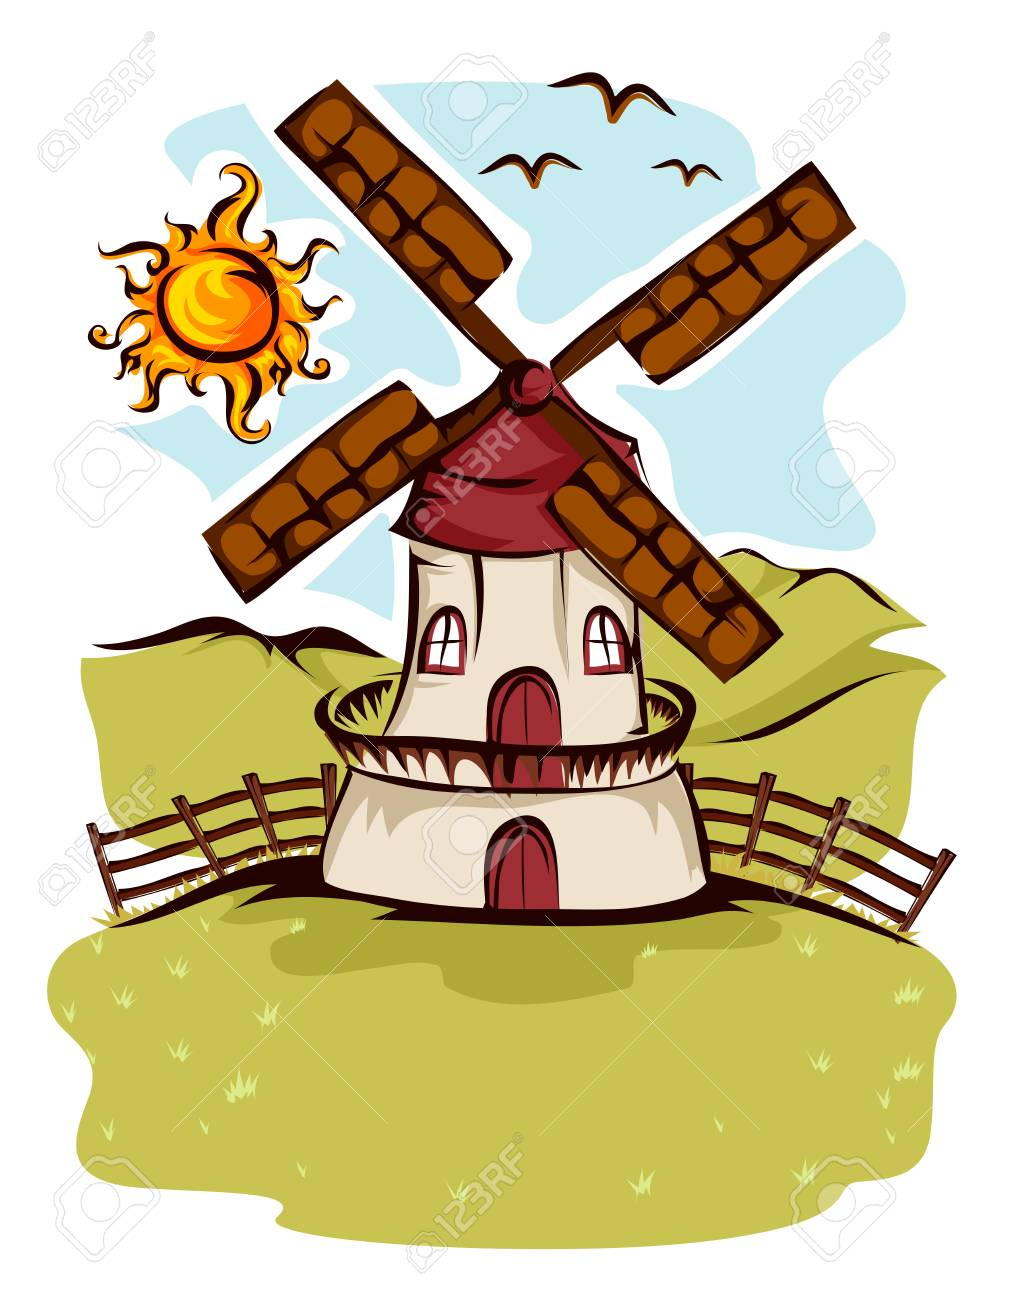 Illustration Of A Farm Windmill In The Fields Under The Sun Stock Photo Picture And Royalty Free Image Image 118586213